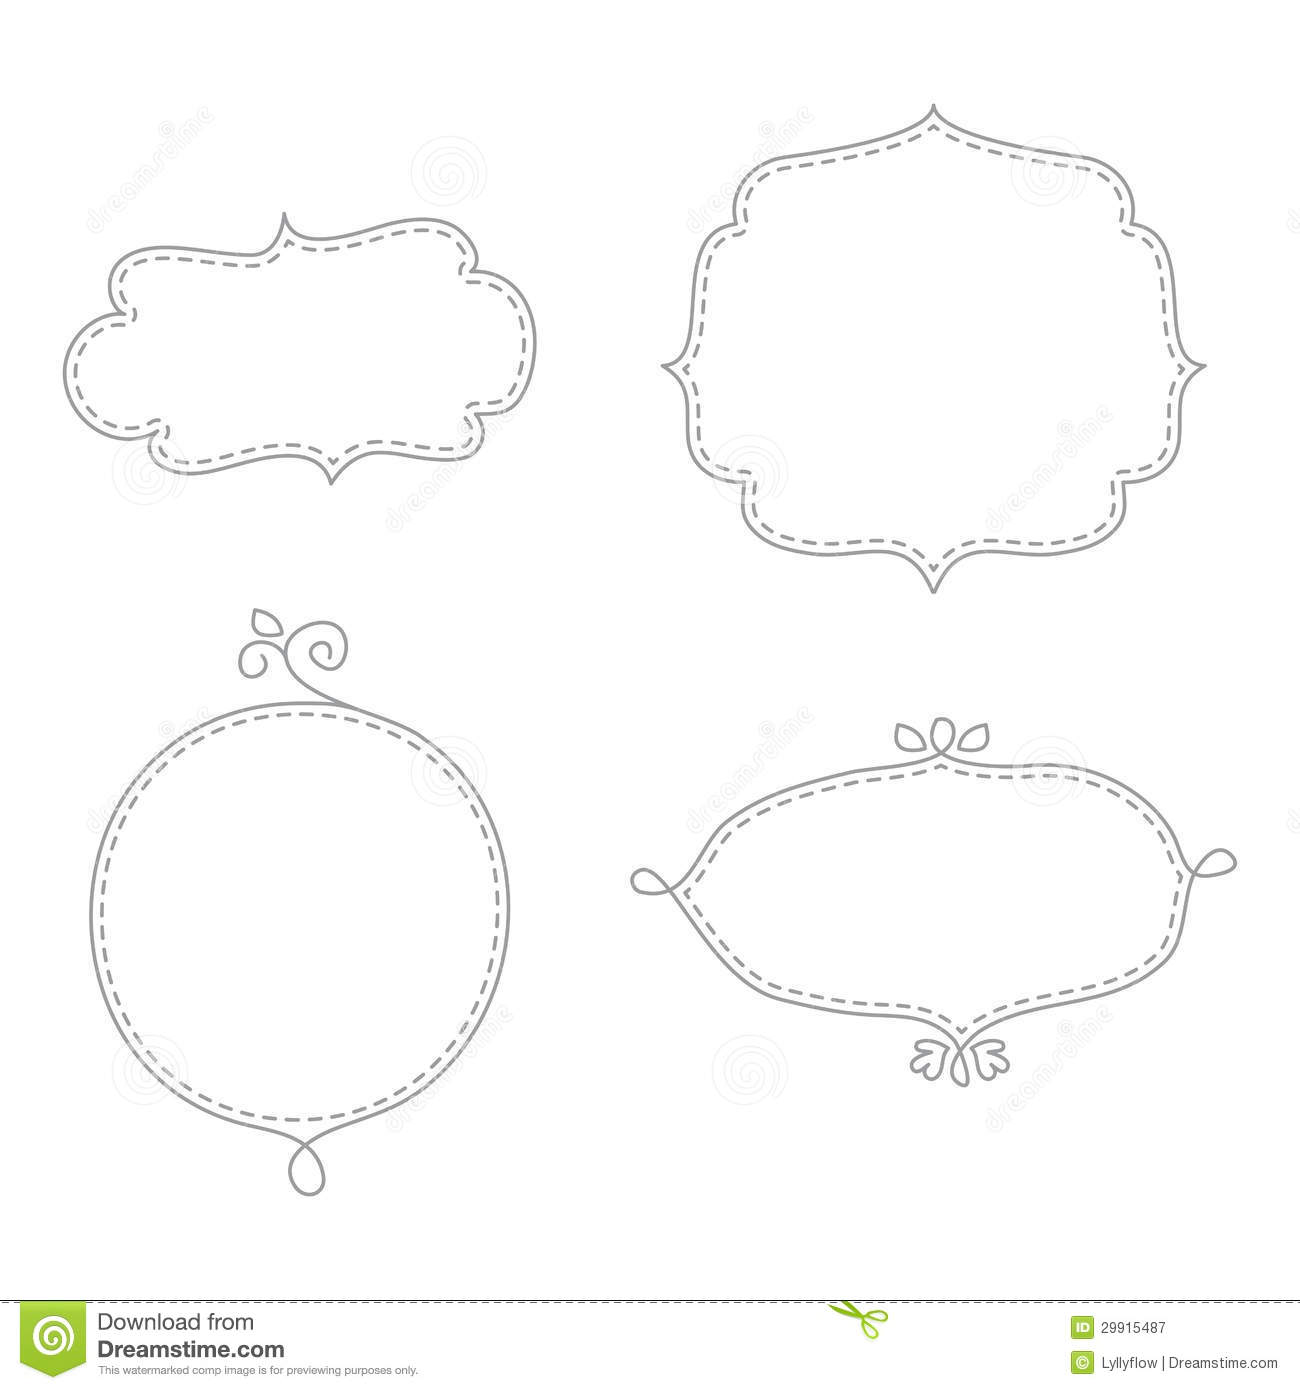 Doodle frames stock vector. Image of ornamental, clip ...